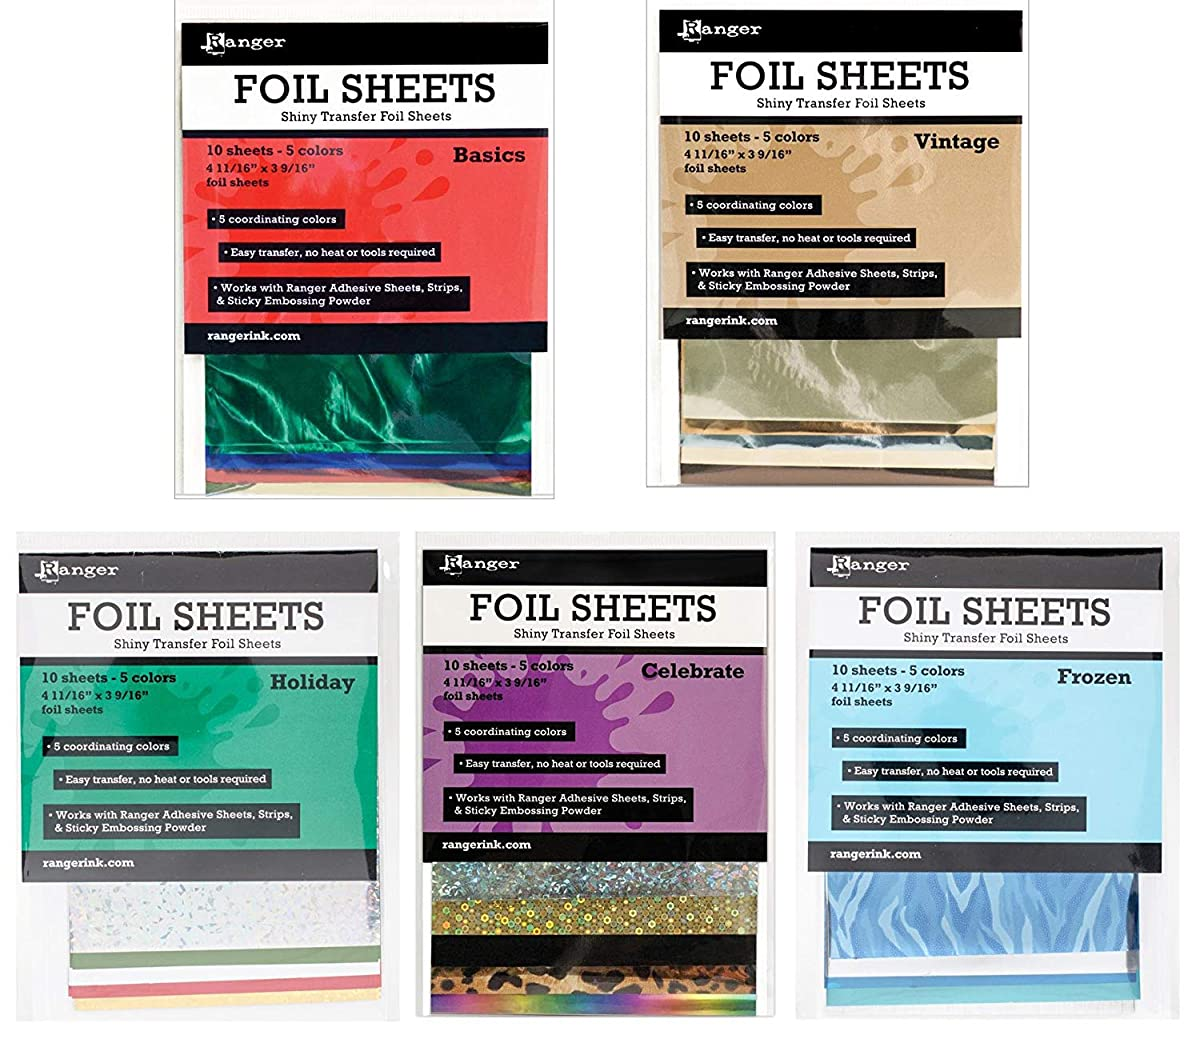 Ranger Decorative Foil Transfer Sheets - Mini Flat Multi-Bundle - A total of fifty 4.69-inch x 3.56-inch sheets in a variety of colors